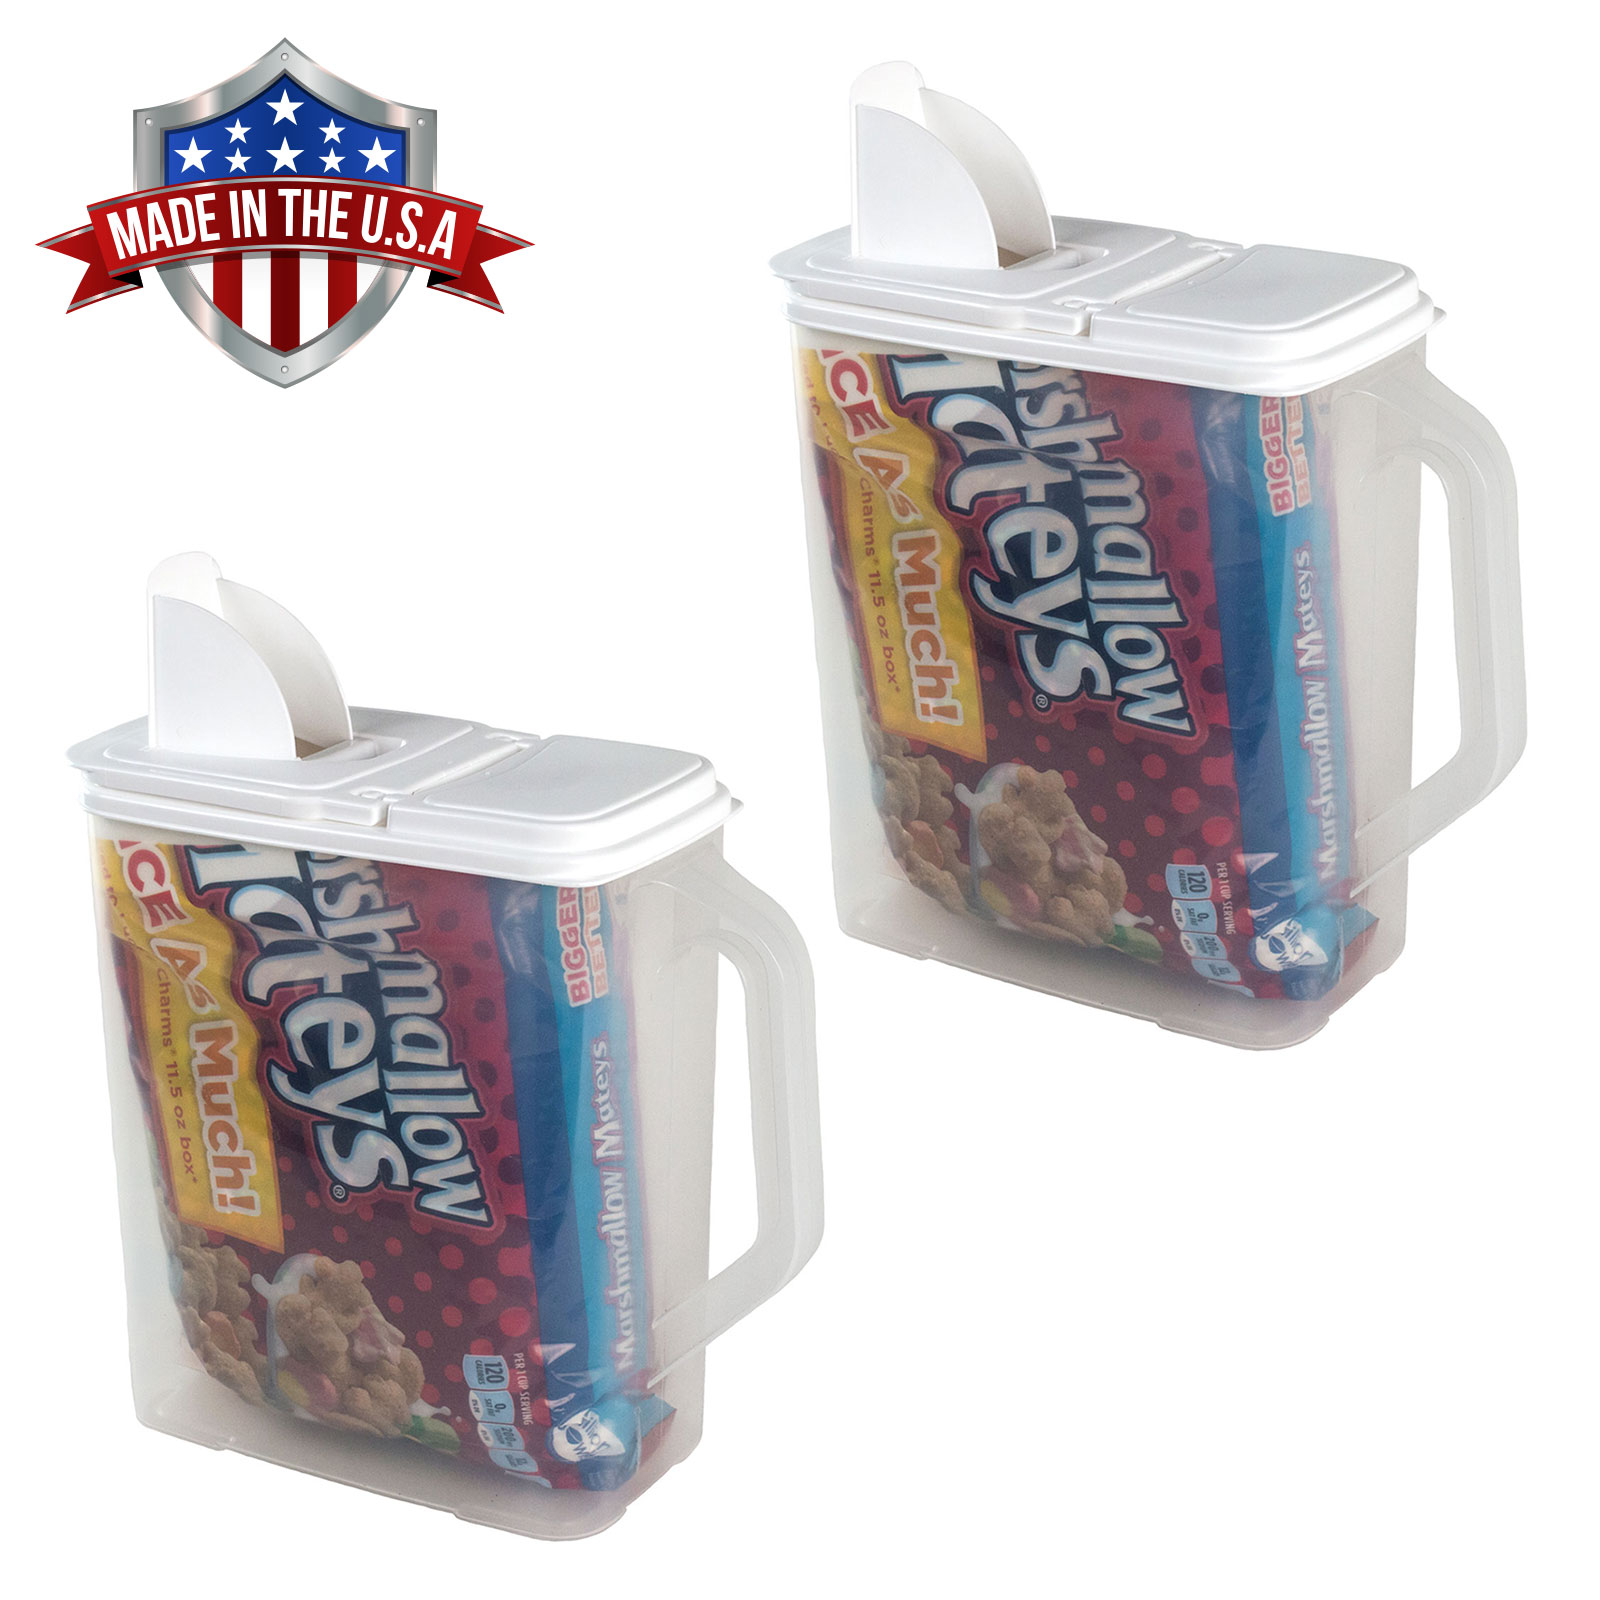 2 Pack of Food Storage Container 6 Quart Flour Sugar Keeper Pour n' Store with Handle